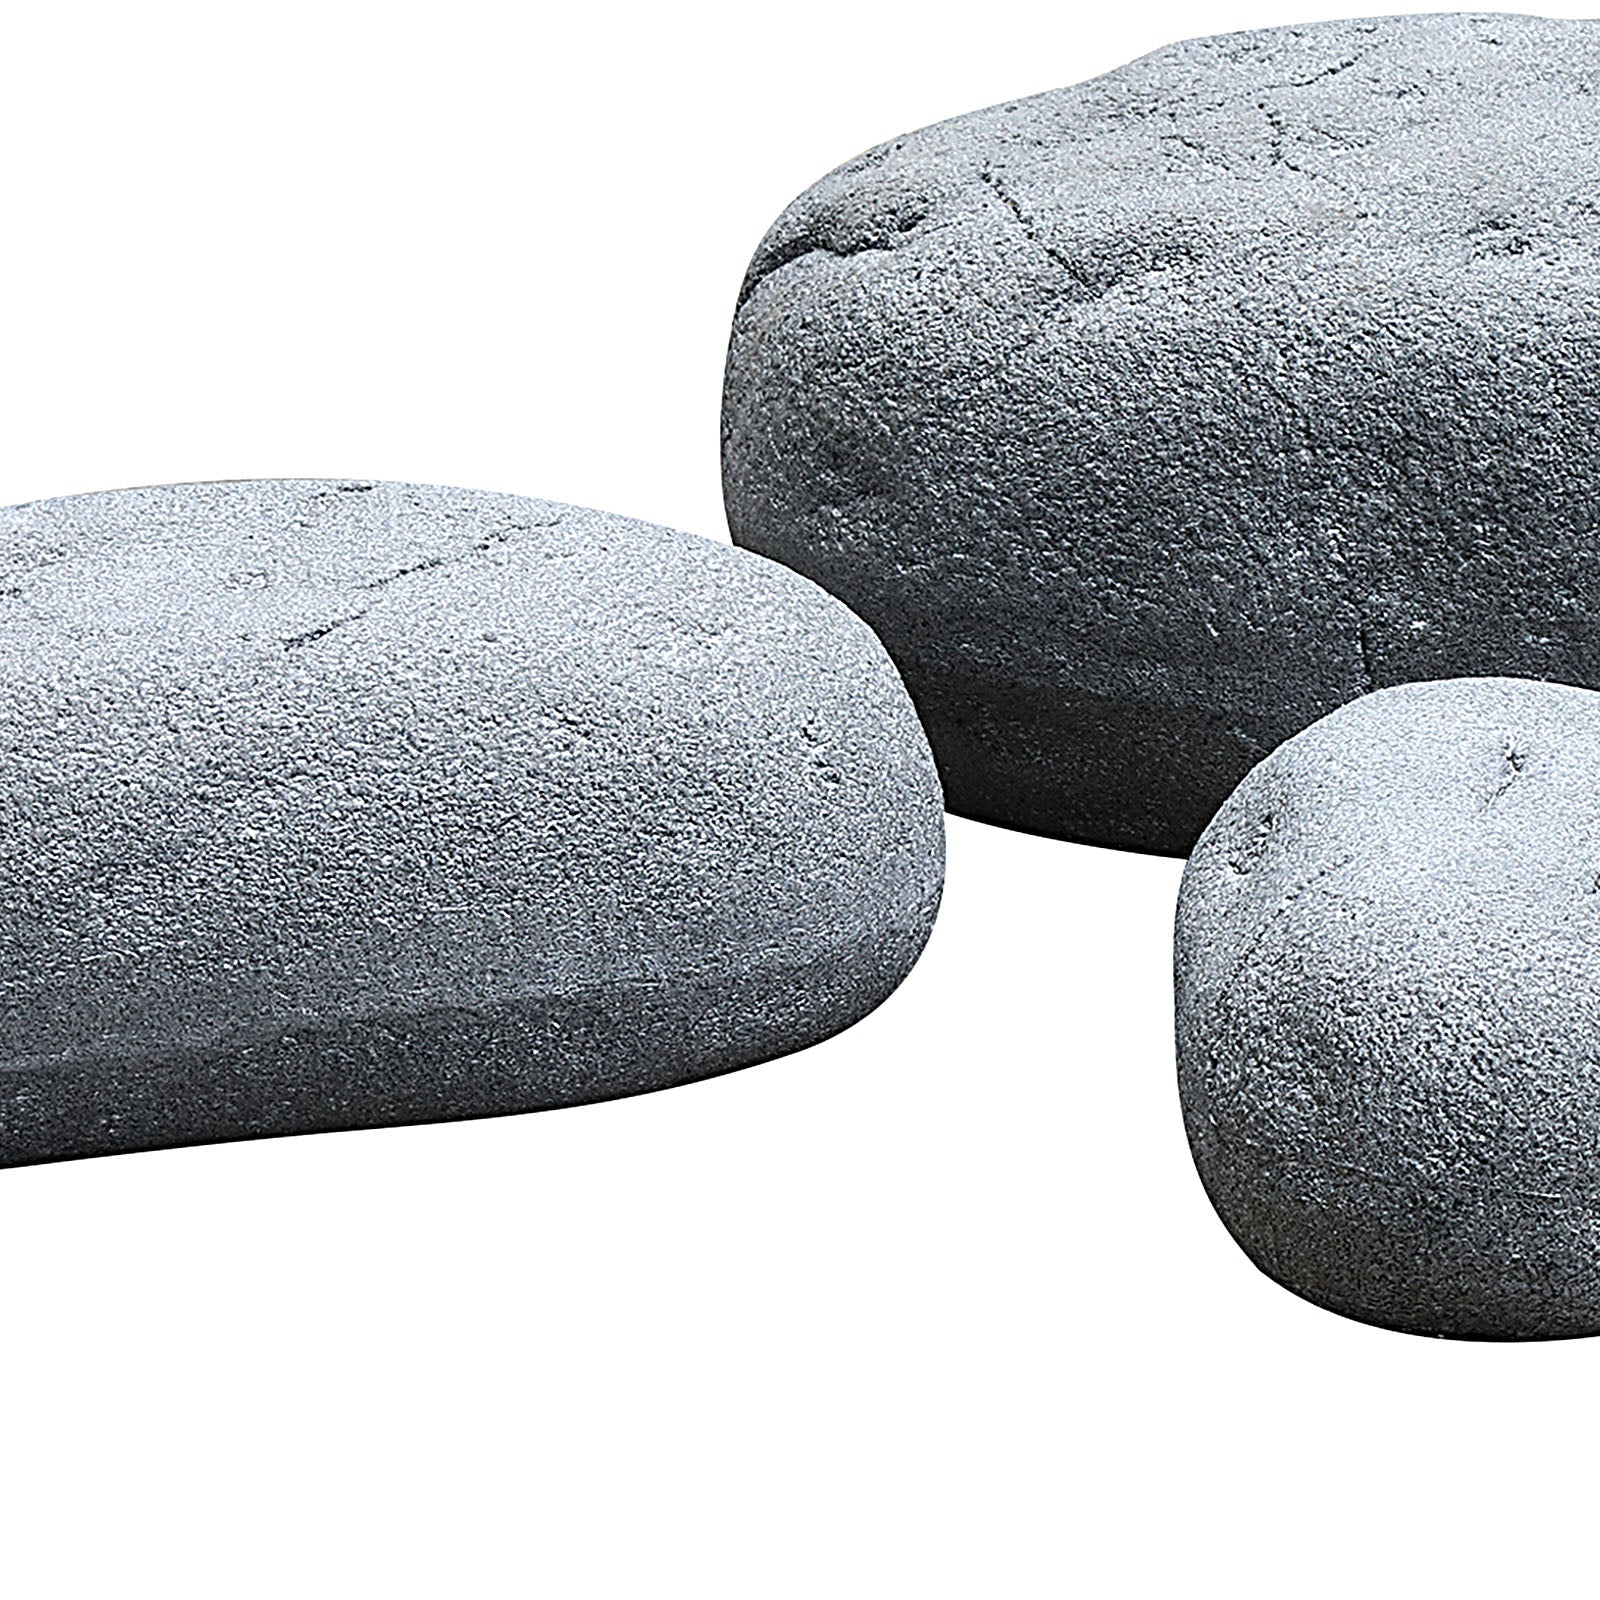 Set of 4 outdoor/indoor Fiberglass concrete decorative rocks/ stool  XK-5040A+B+C XK-5013A